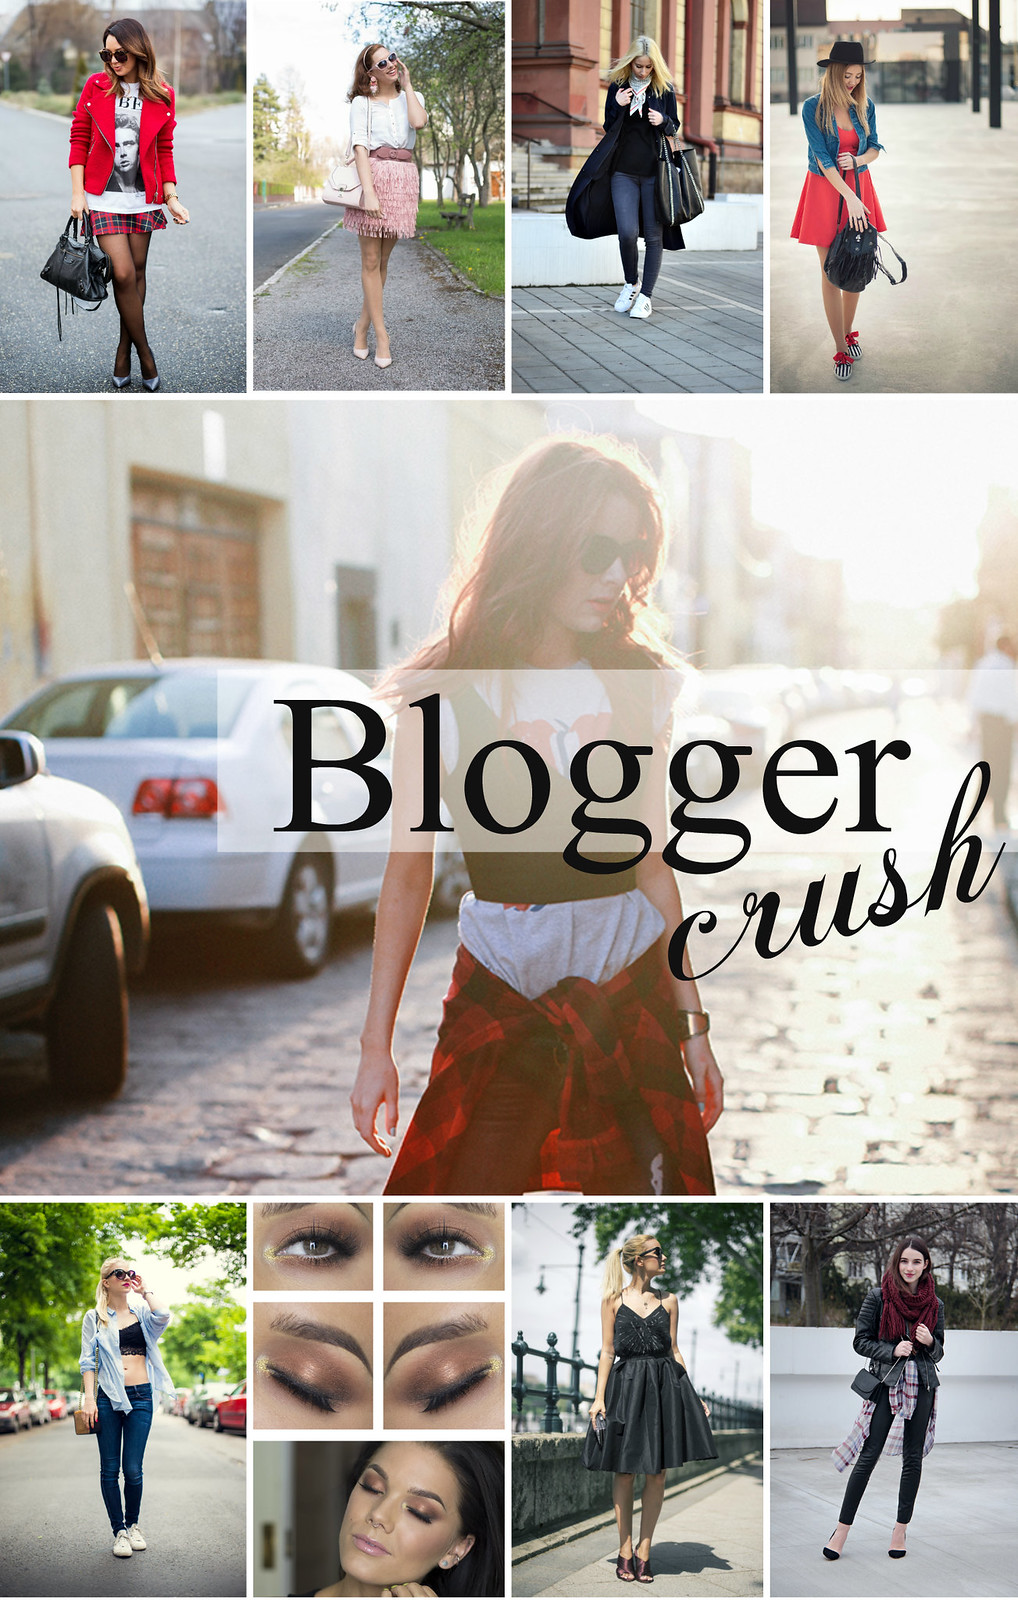 blogs Collage